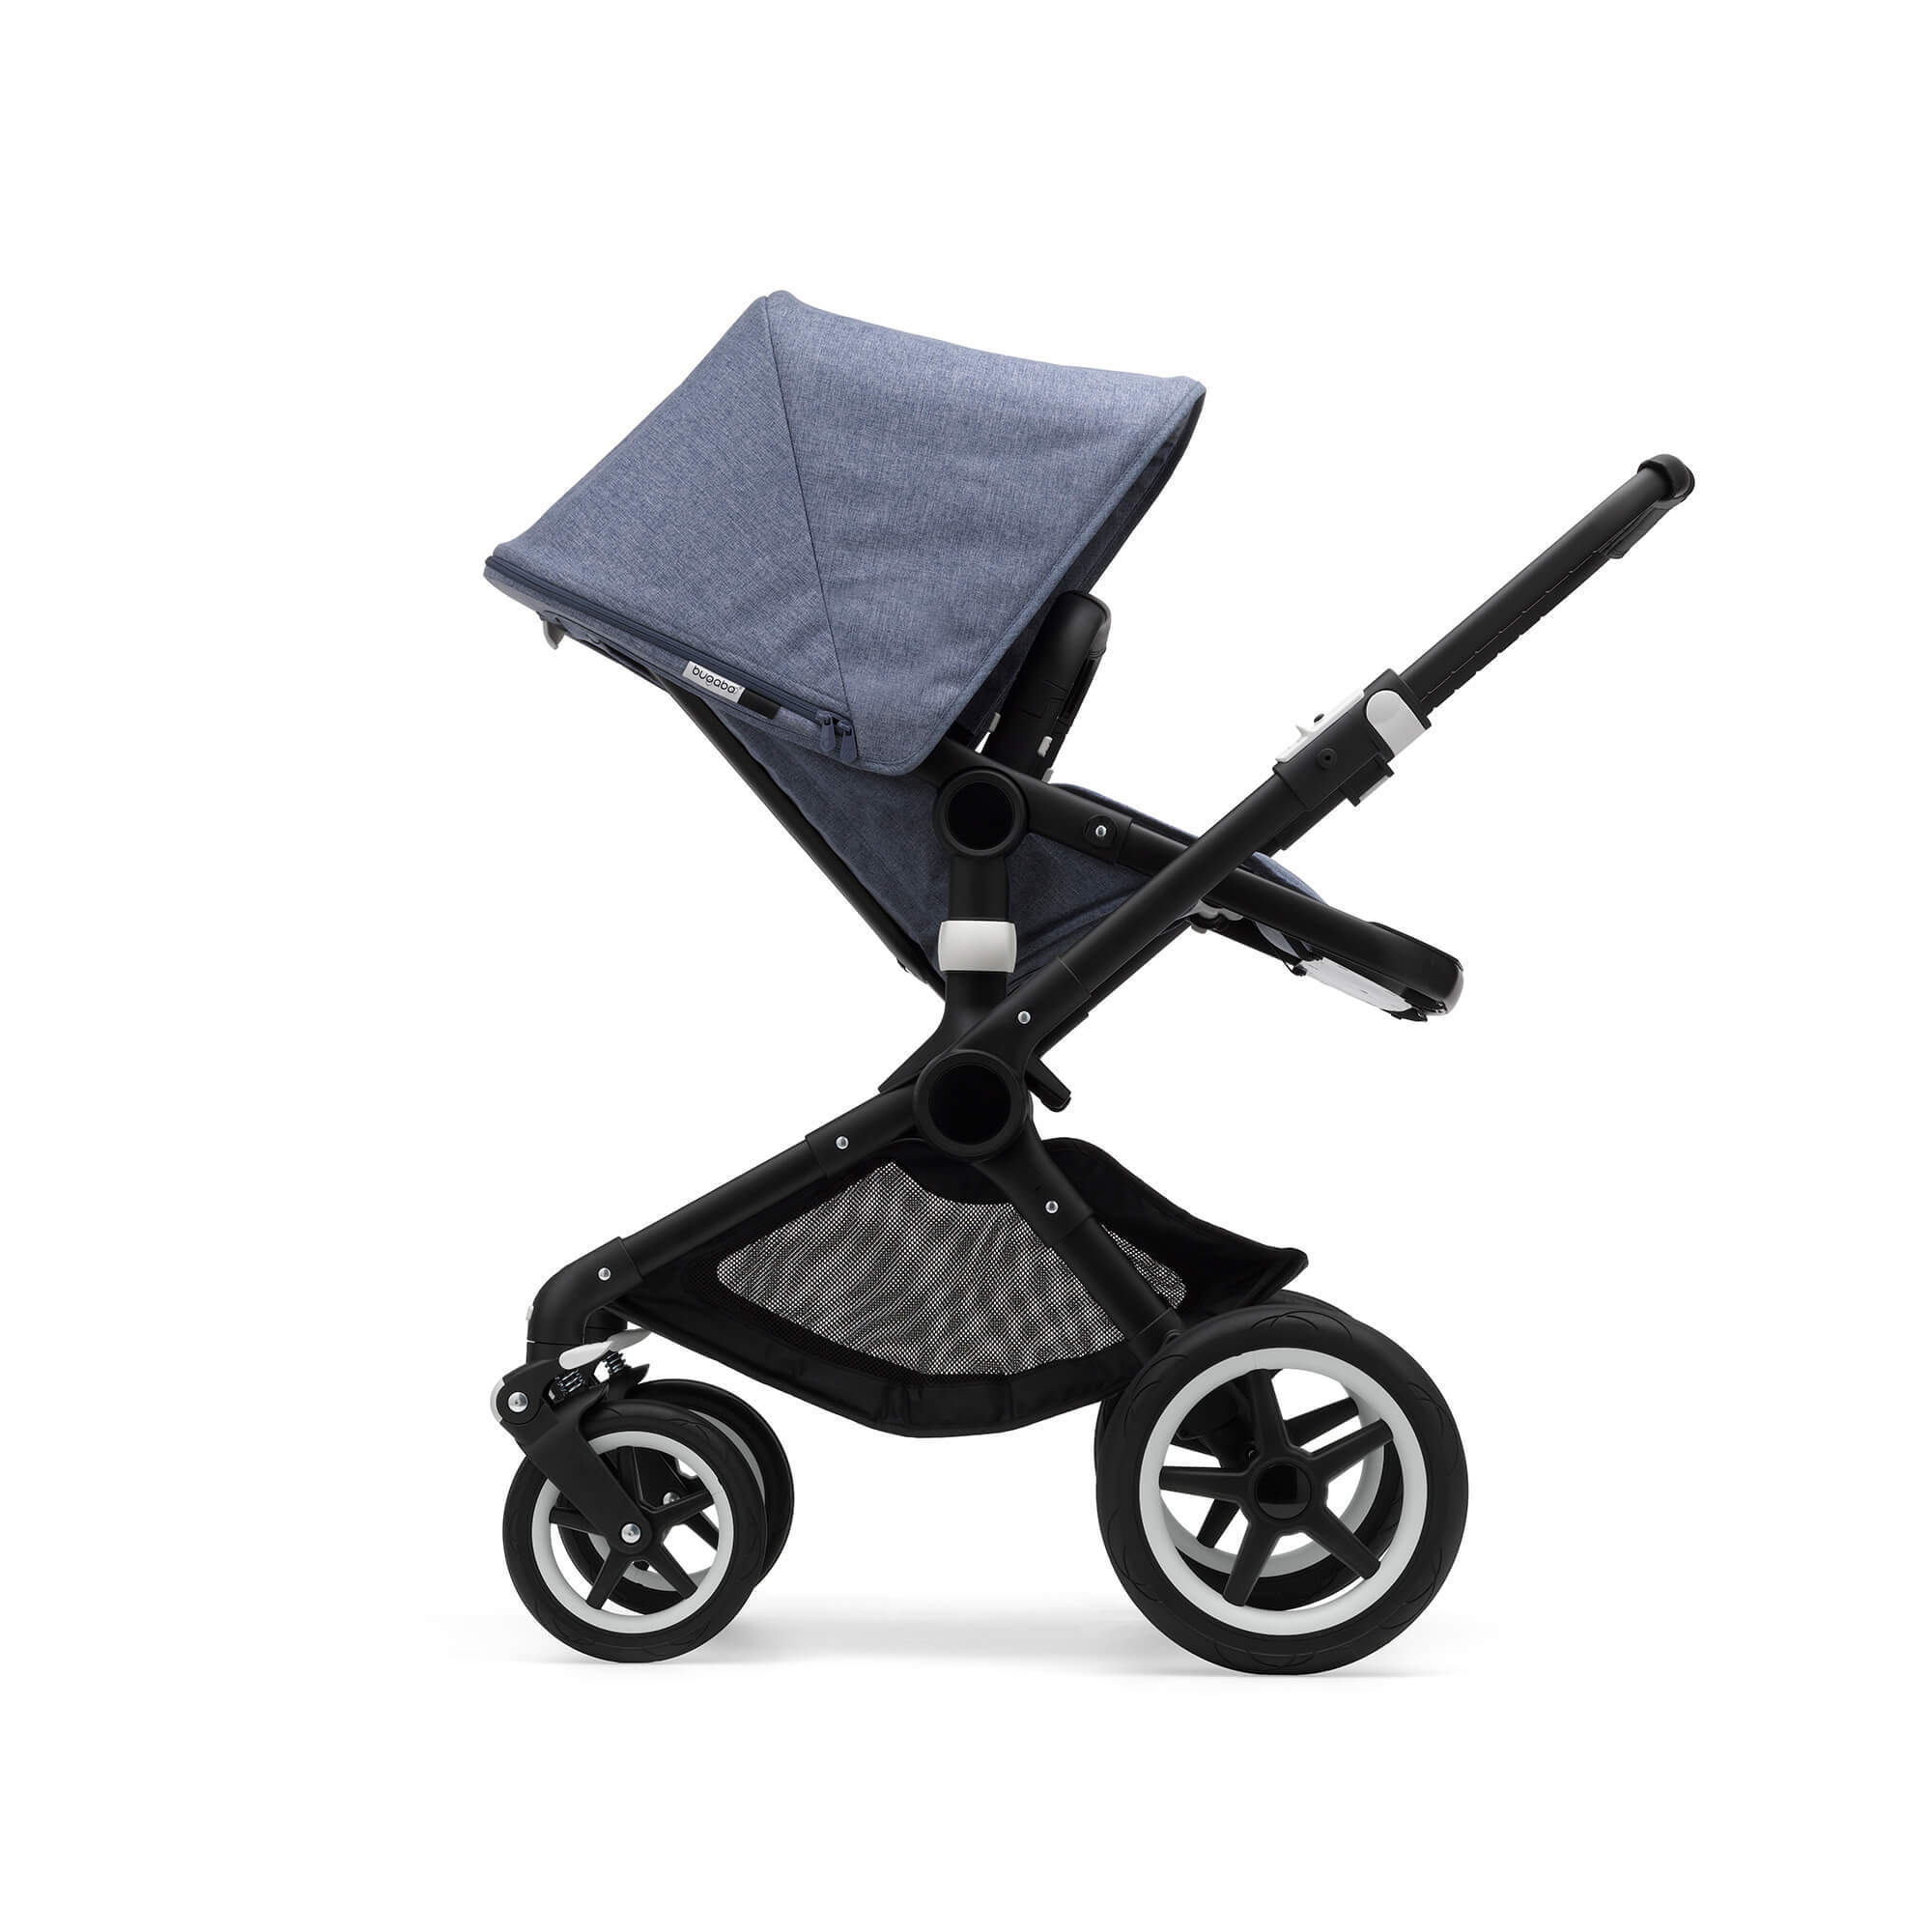 Bugaboo Fox | Top 5 Best Bugaboo Stroller Reviews